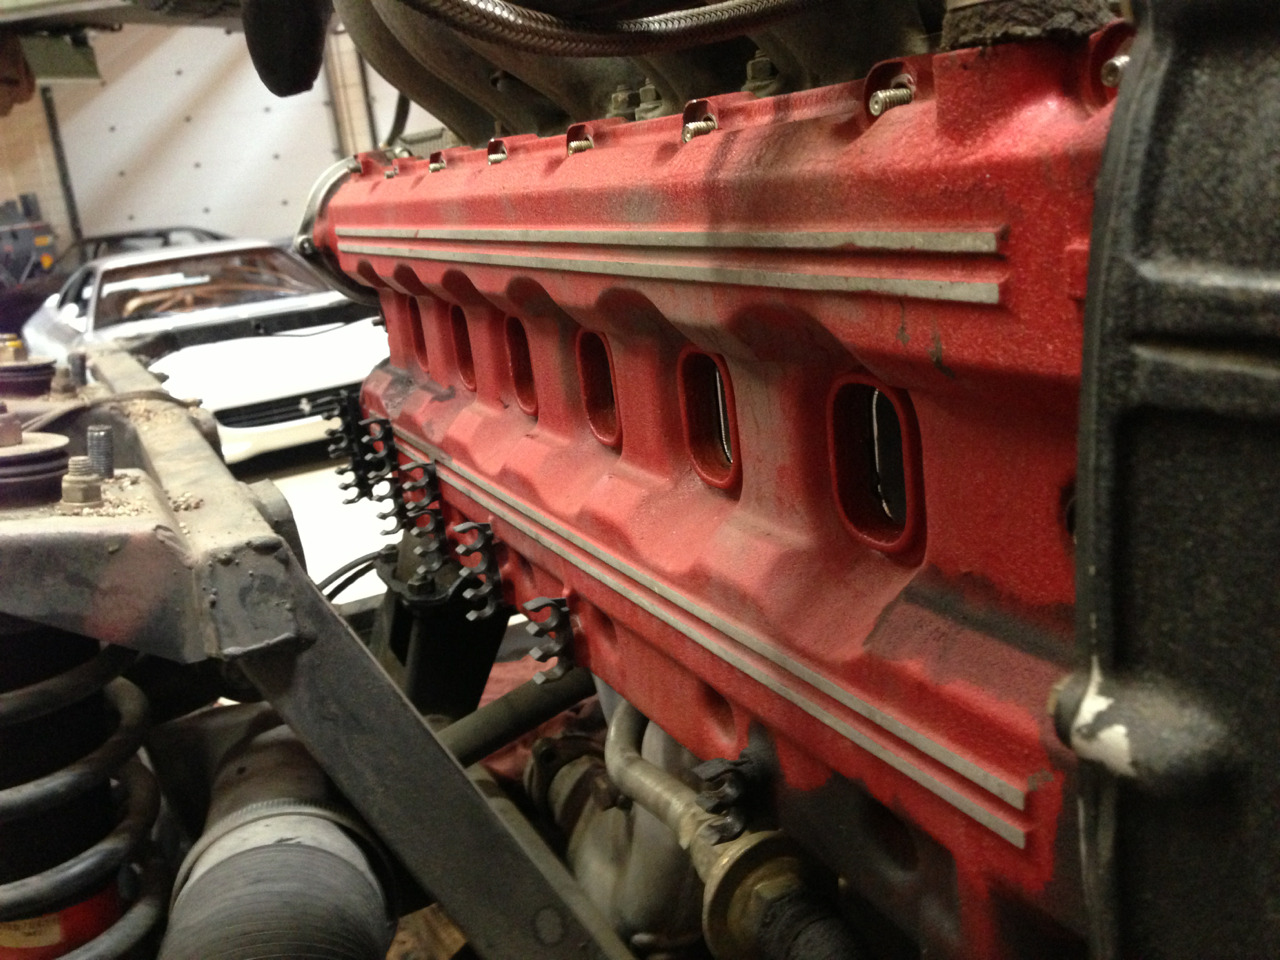 Ferrari flat 12 boxer engine out of a testarossa. Beginning stages of a major service where every seal, belt and hose is replaced with new components.